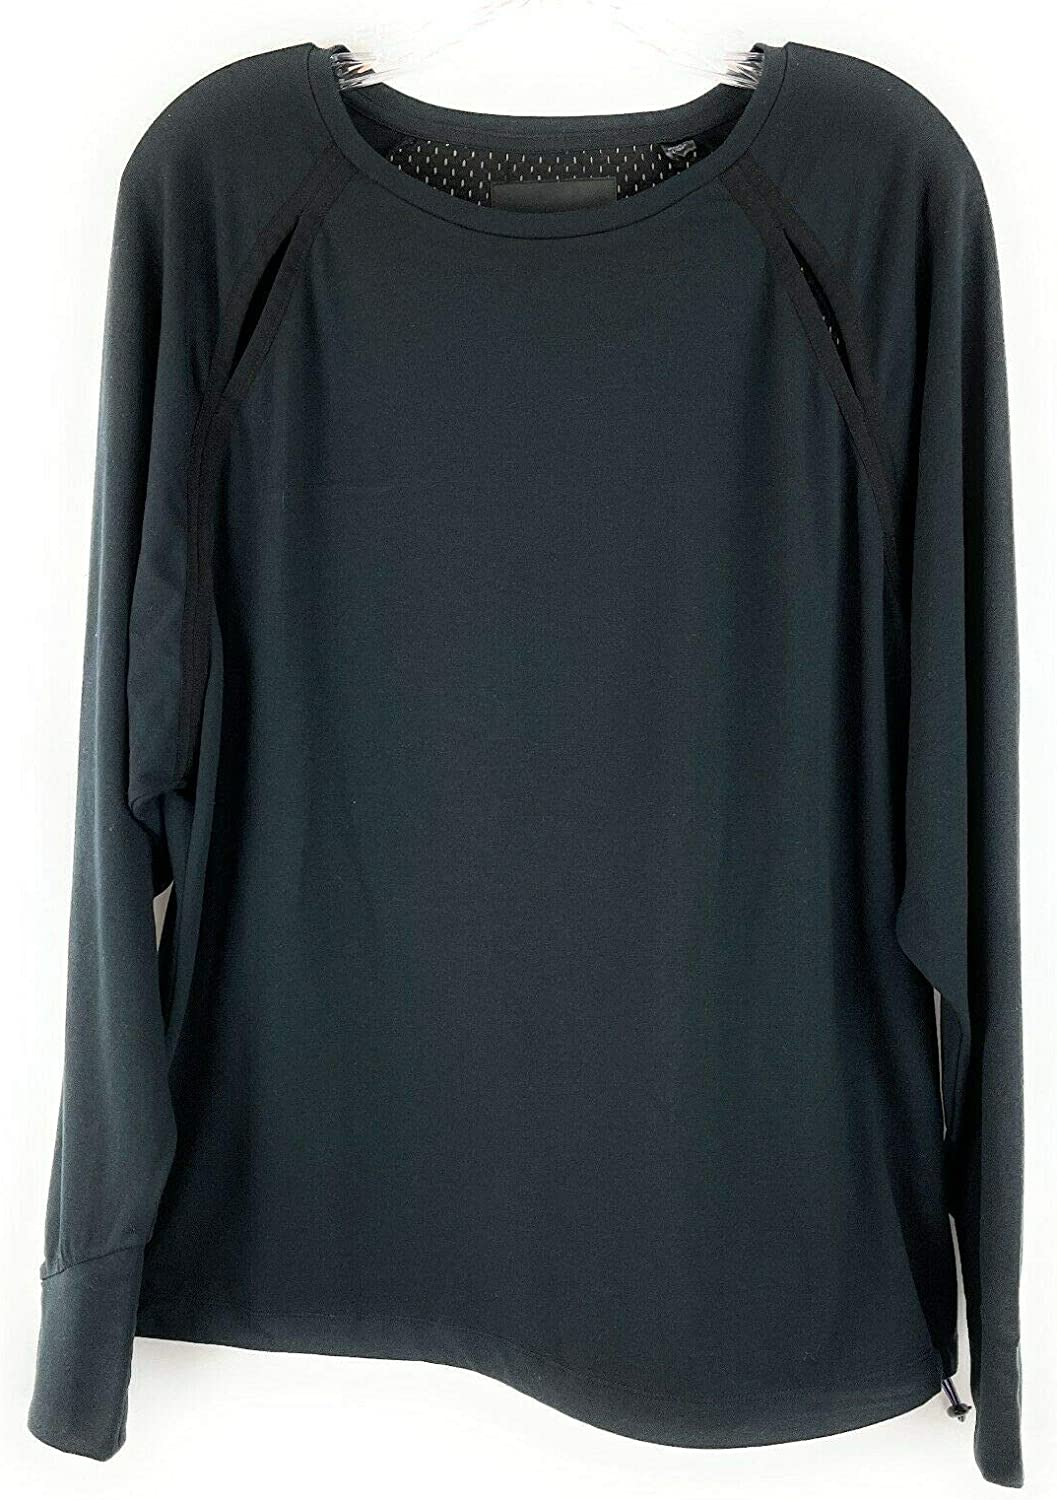 Diesel 55 T Peas 1 Mens Top Free shipping Black M Tank 2021 spring and summer new